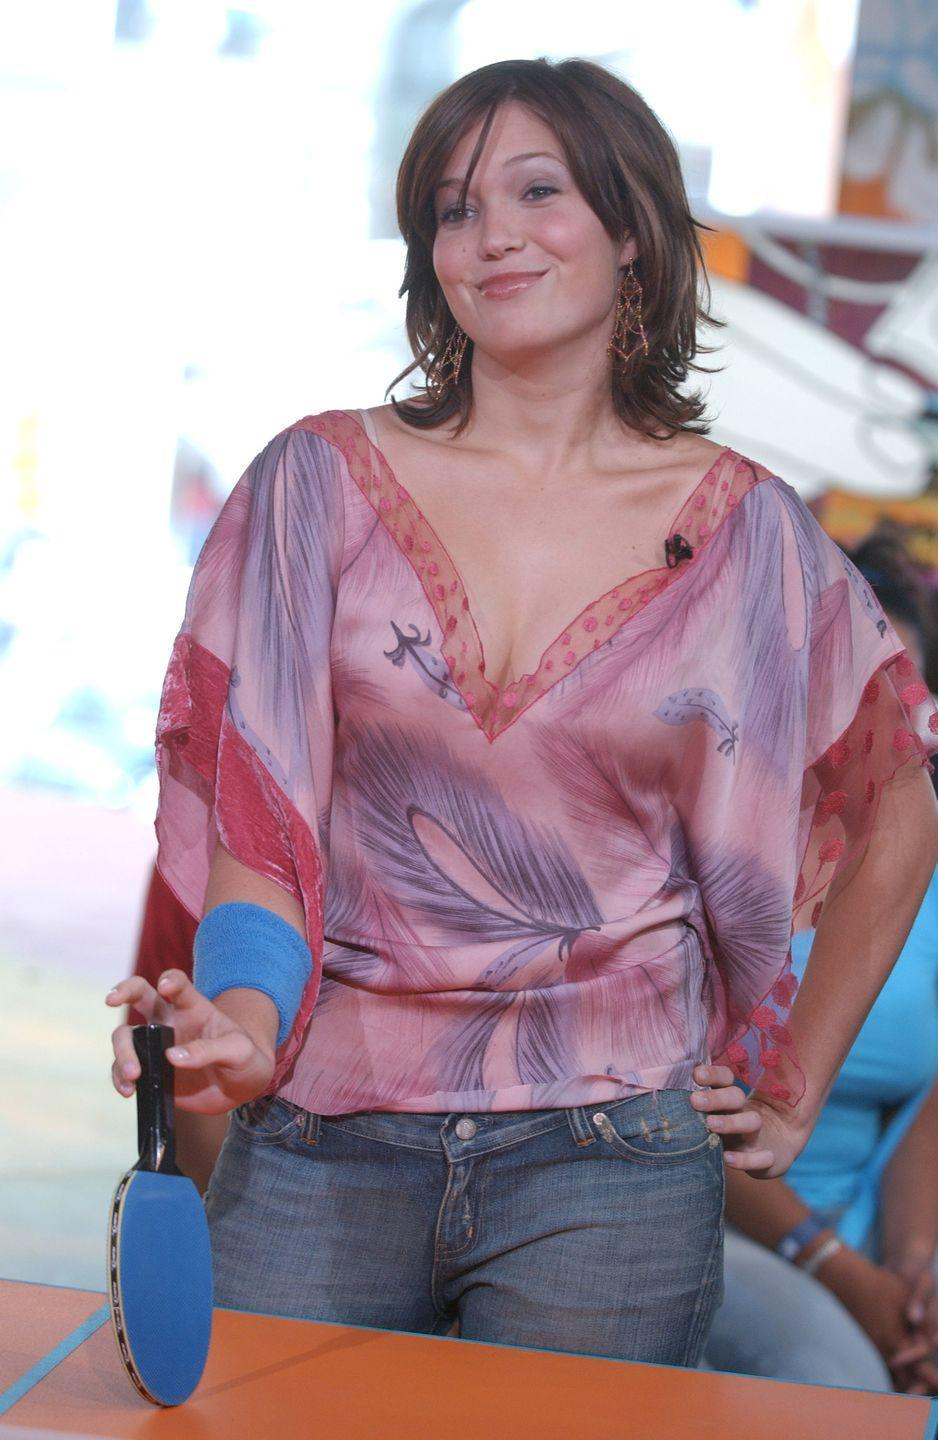 <p>If Mandy Moore was <em>trying </em>to wear something horribly unflattering...she succeeded. I do need to give props to our girl for her totally-2003-styled hairdo. </p>